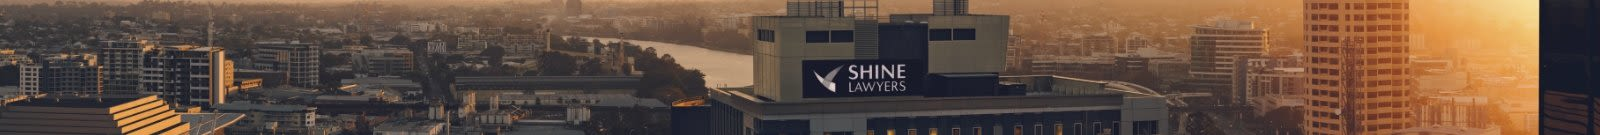 Shine Lawyers | CBA Open Advice Review Program | Shine Lawyers